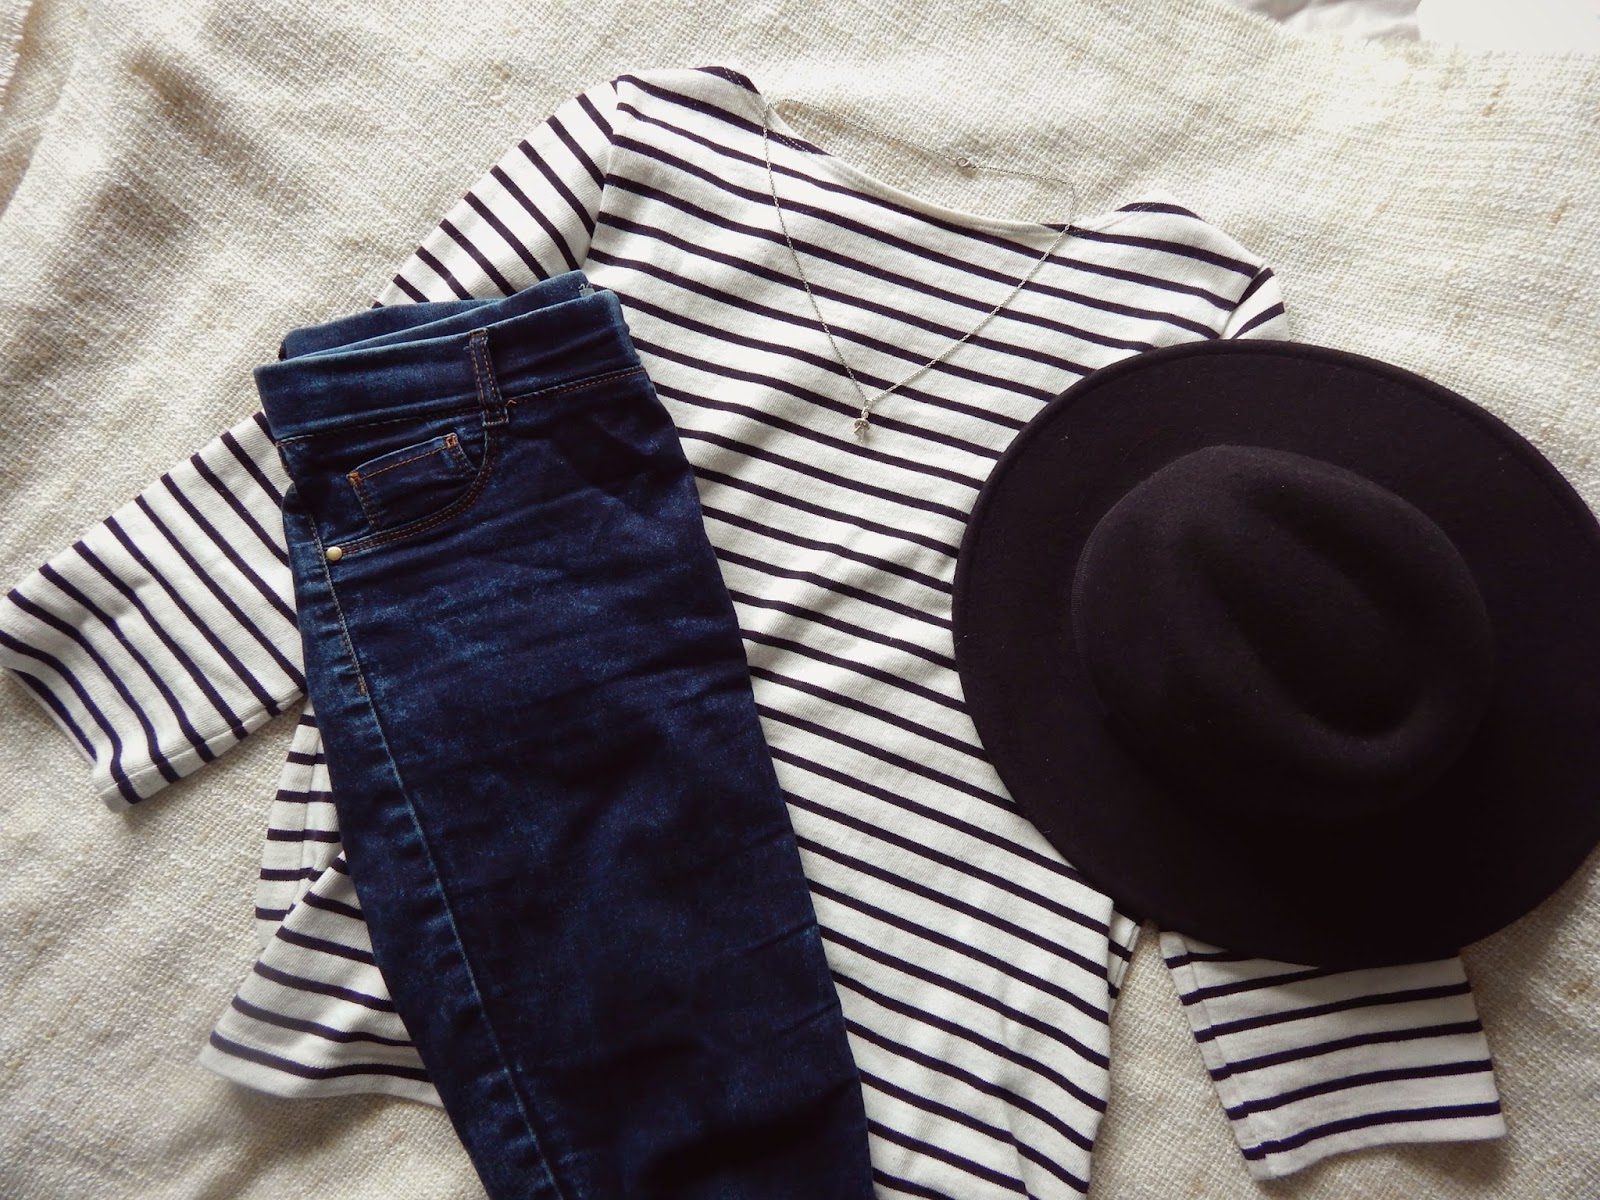 Stripy Outfit